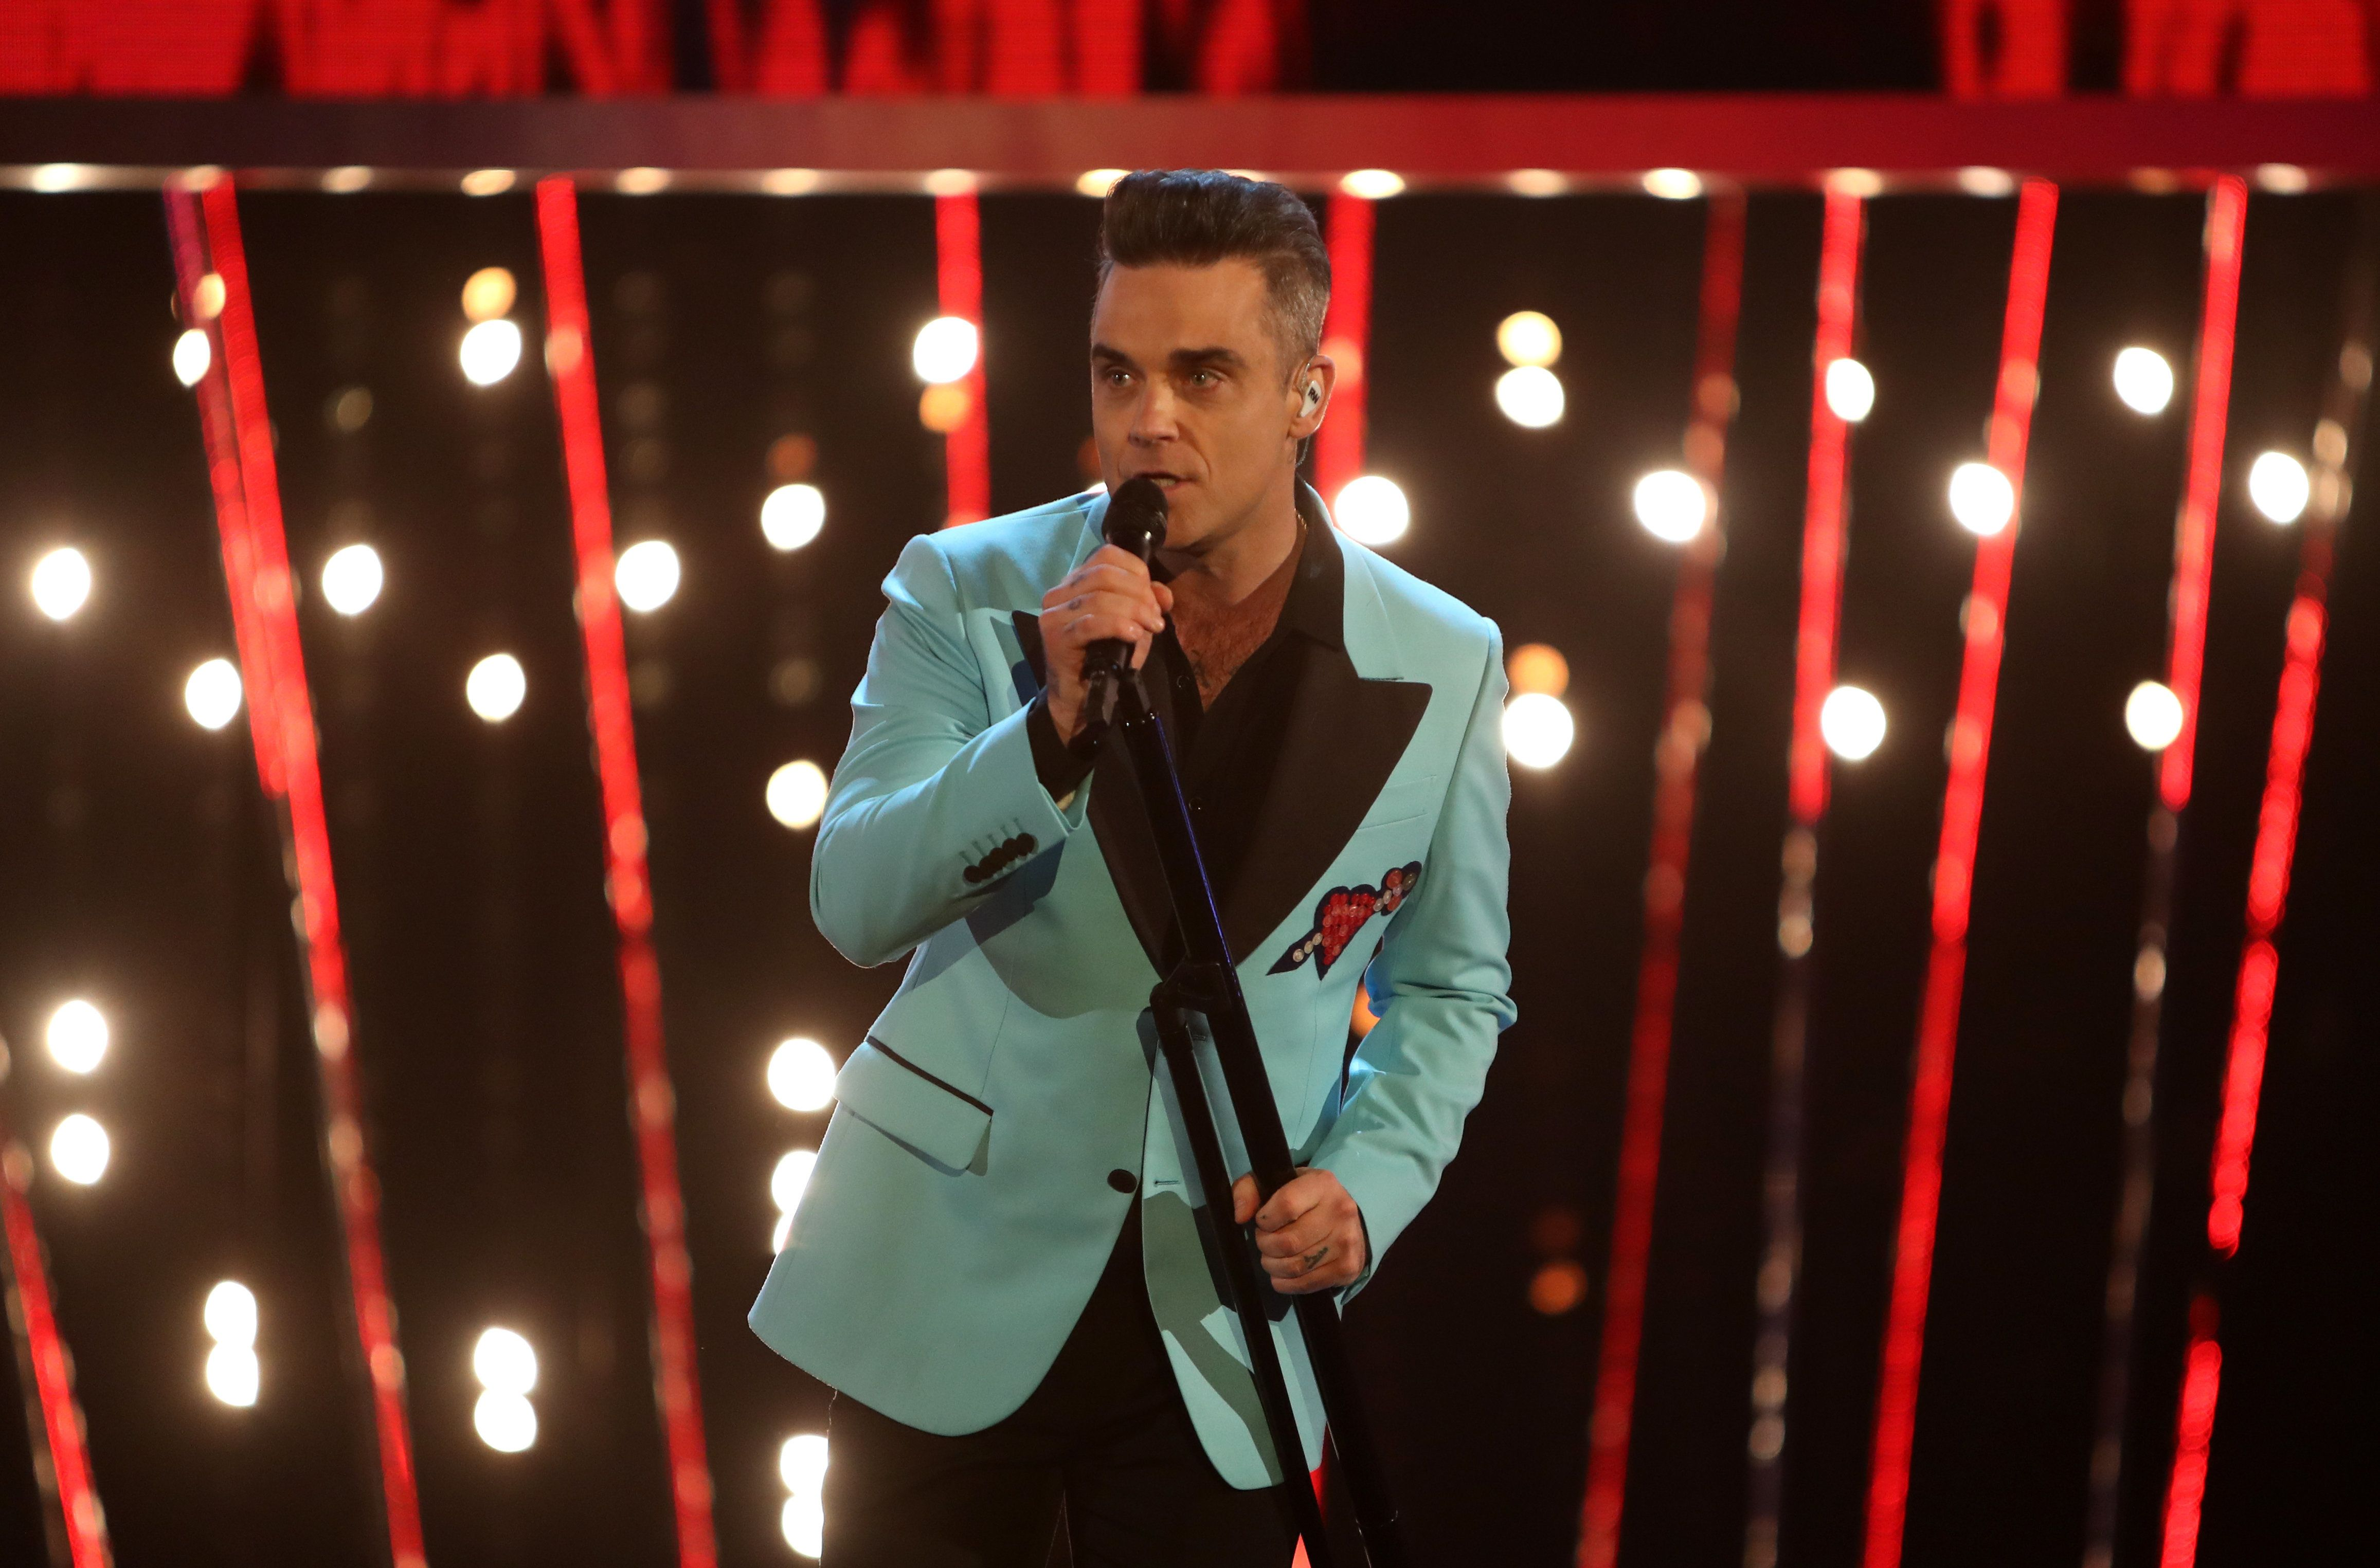 Robbie Williams' Management Team Accused Of Selling Tour Tickets On Resale Sites At Inflated